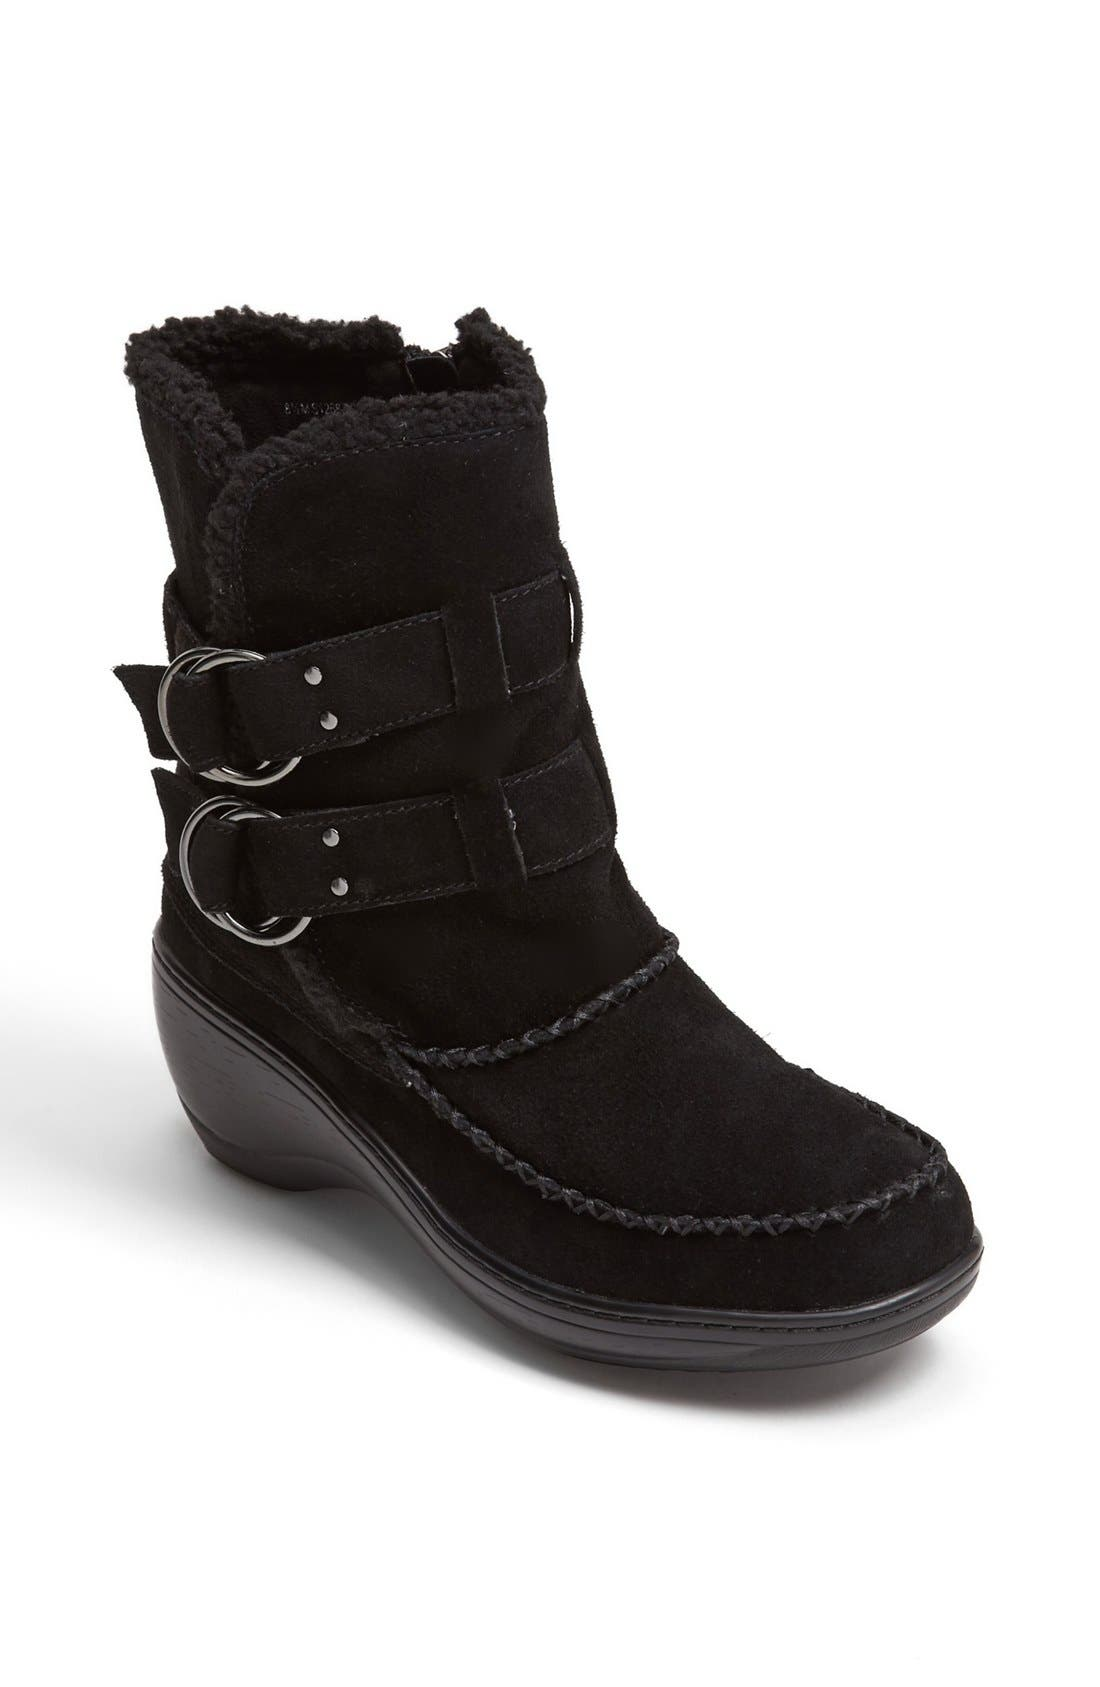 Alternate Image 1 Selected - SoftWalk® 'Manchester' Boot